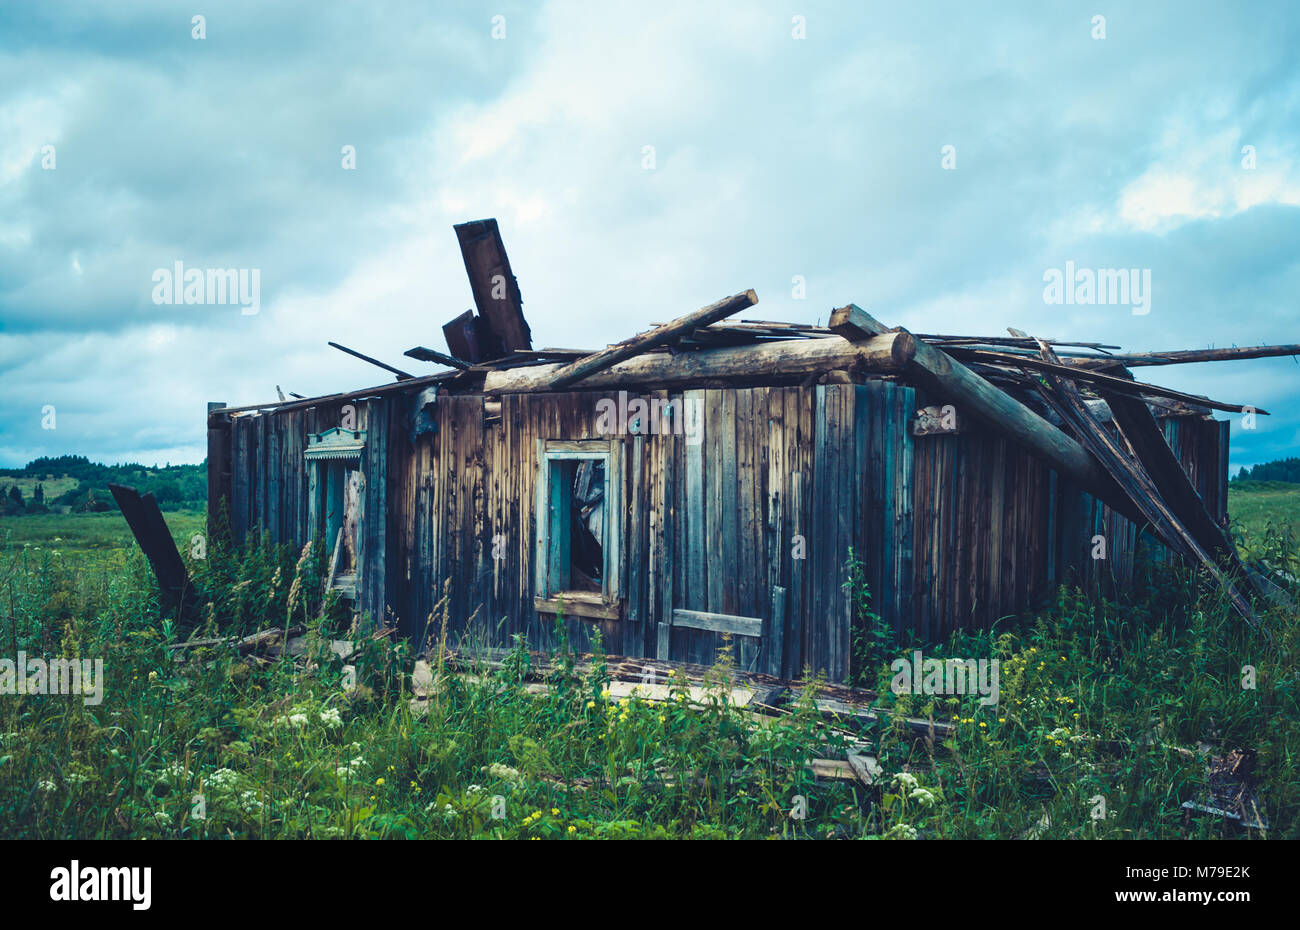 Close-up old ruined wooden rural house is standing among fields. - Stock Image